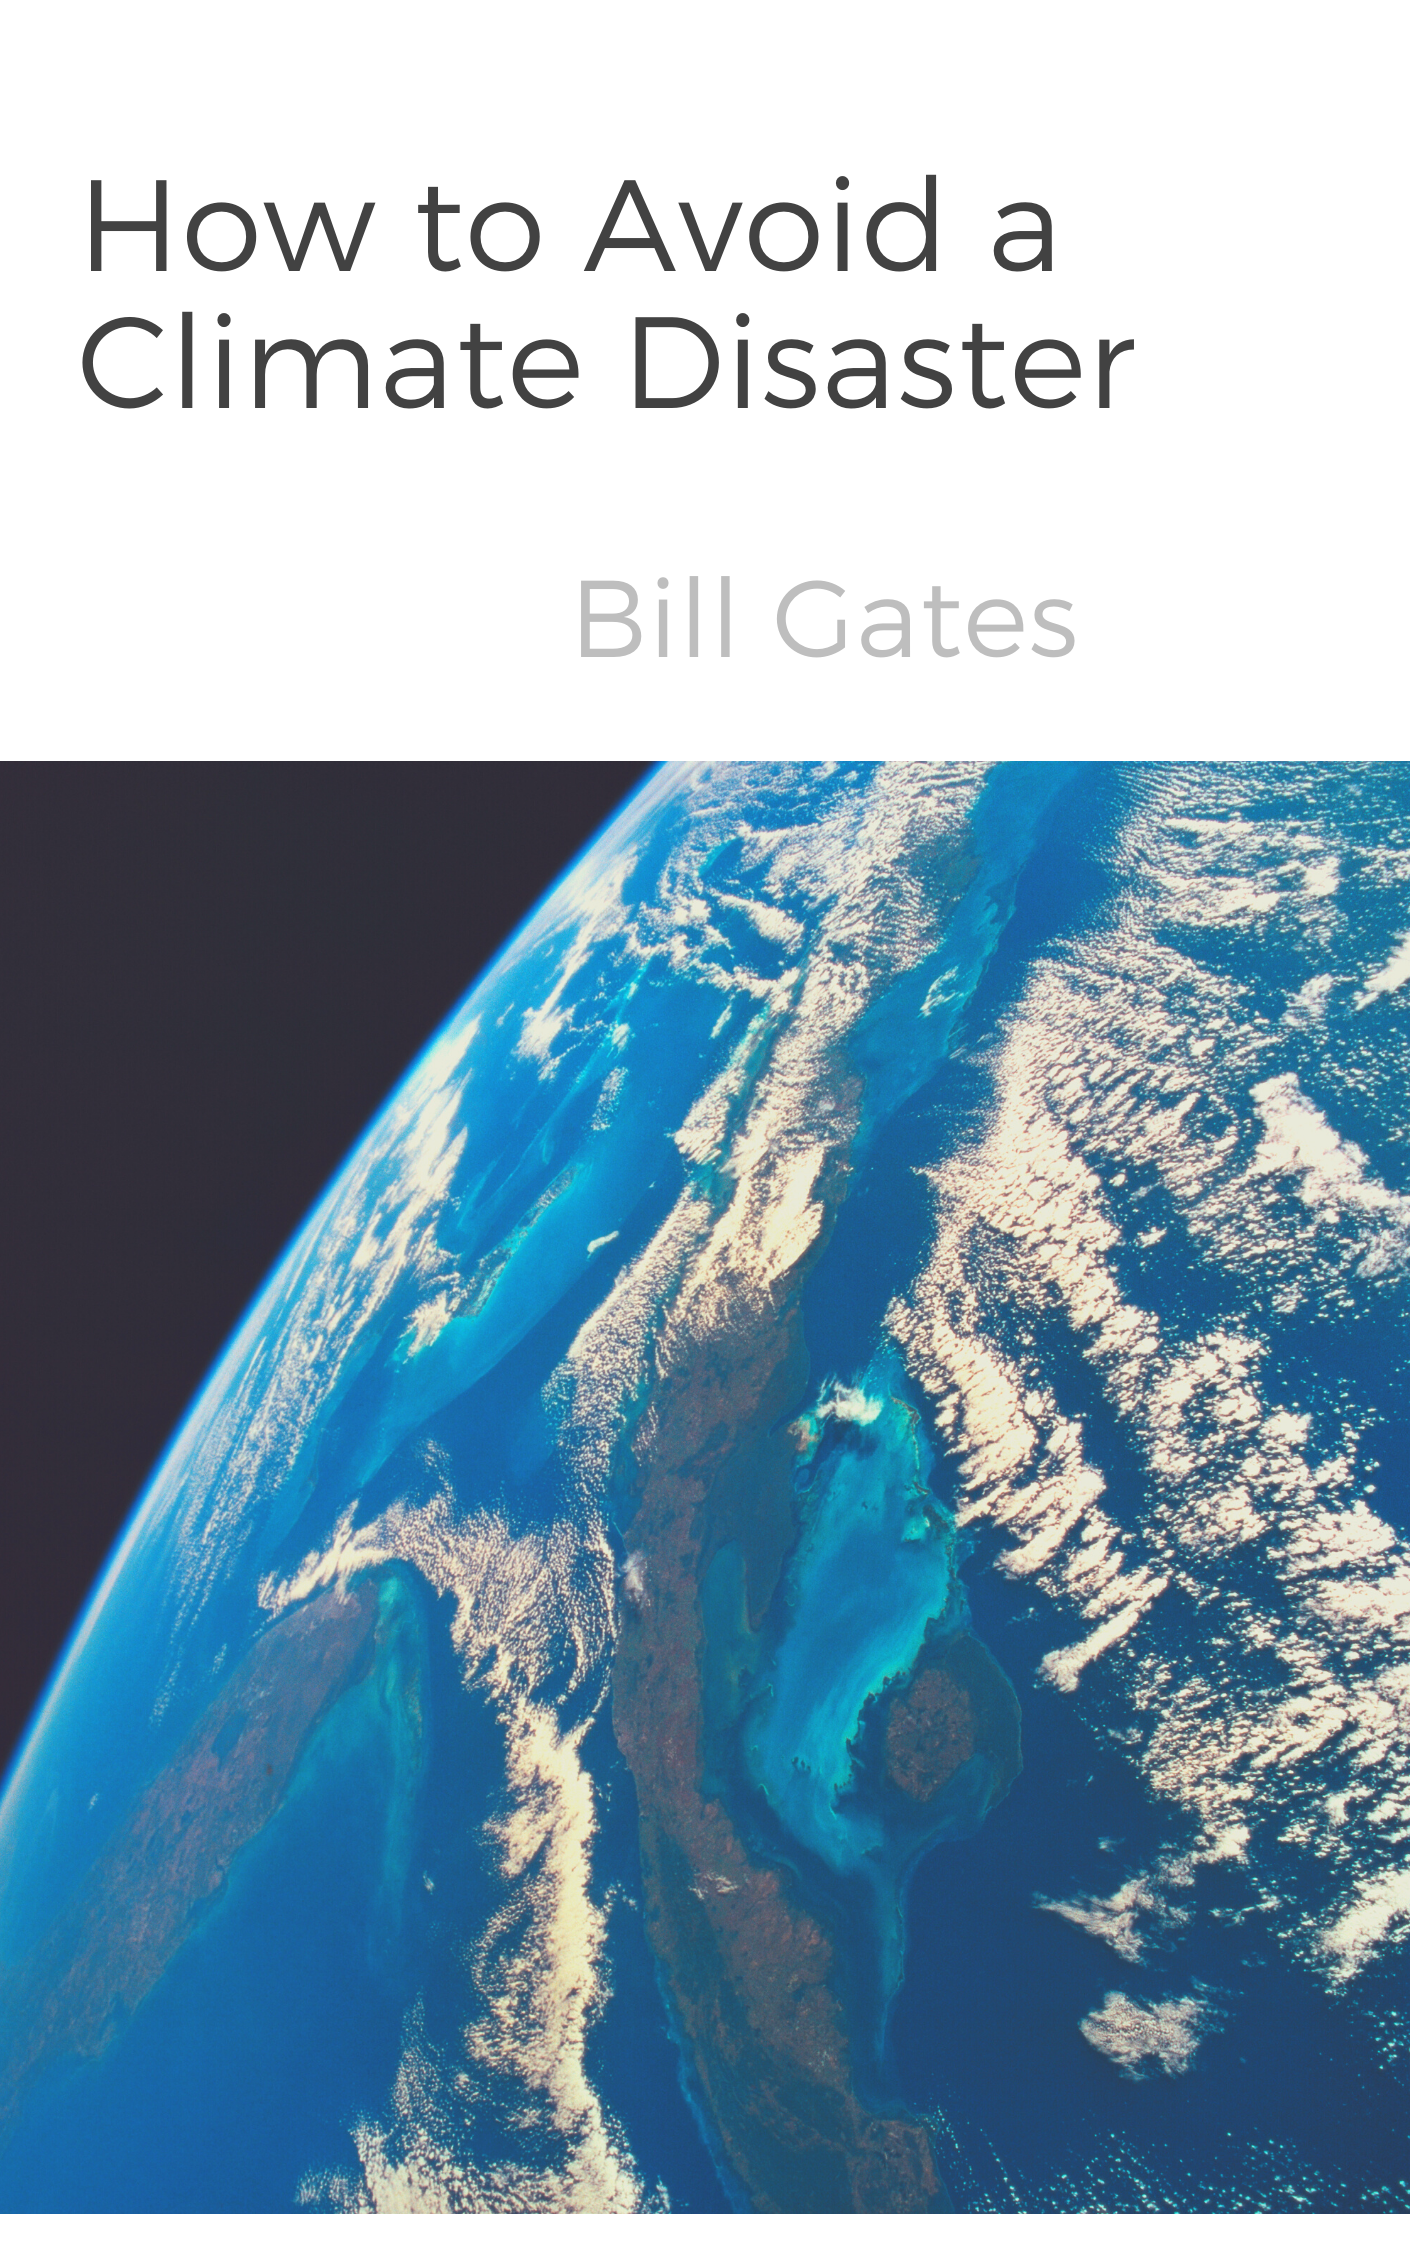 book summary - How to Avoid a Climate Disaster by Bill Gates